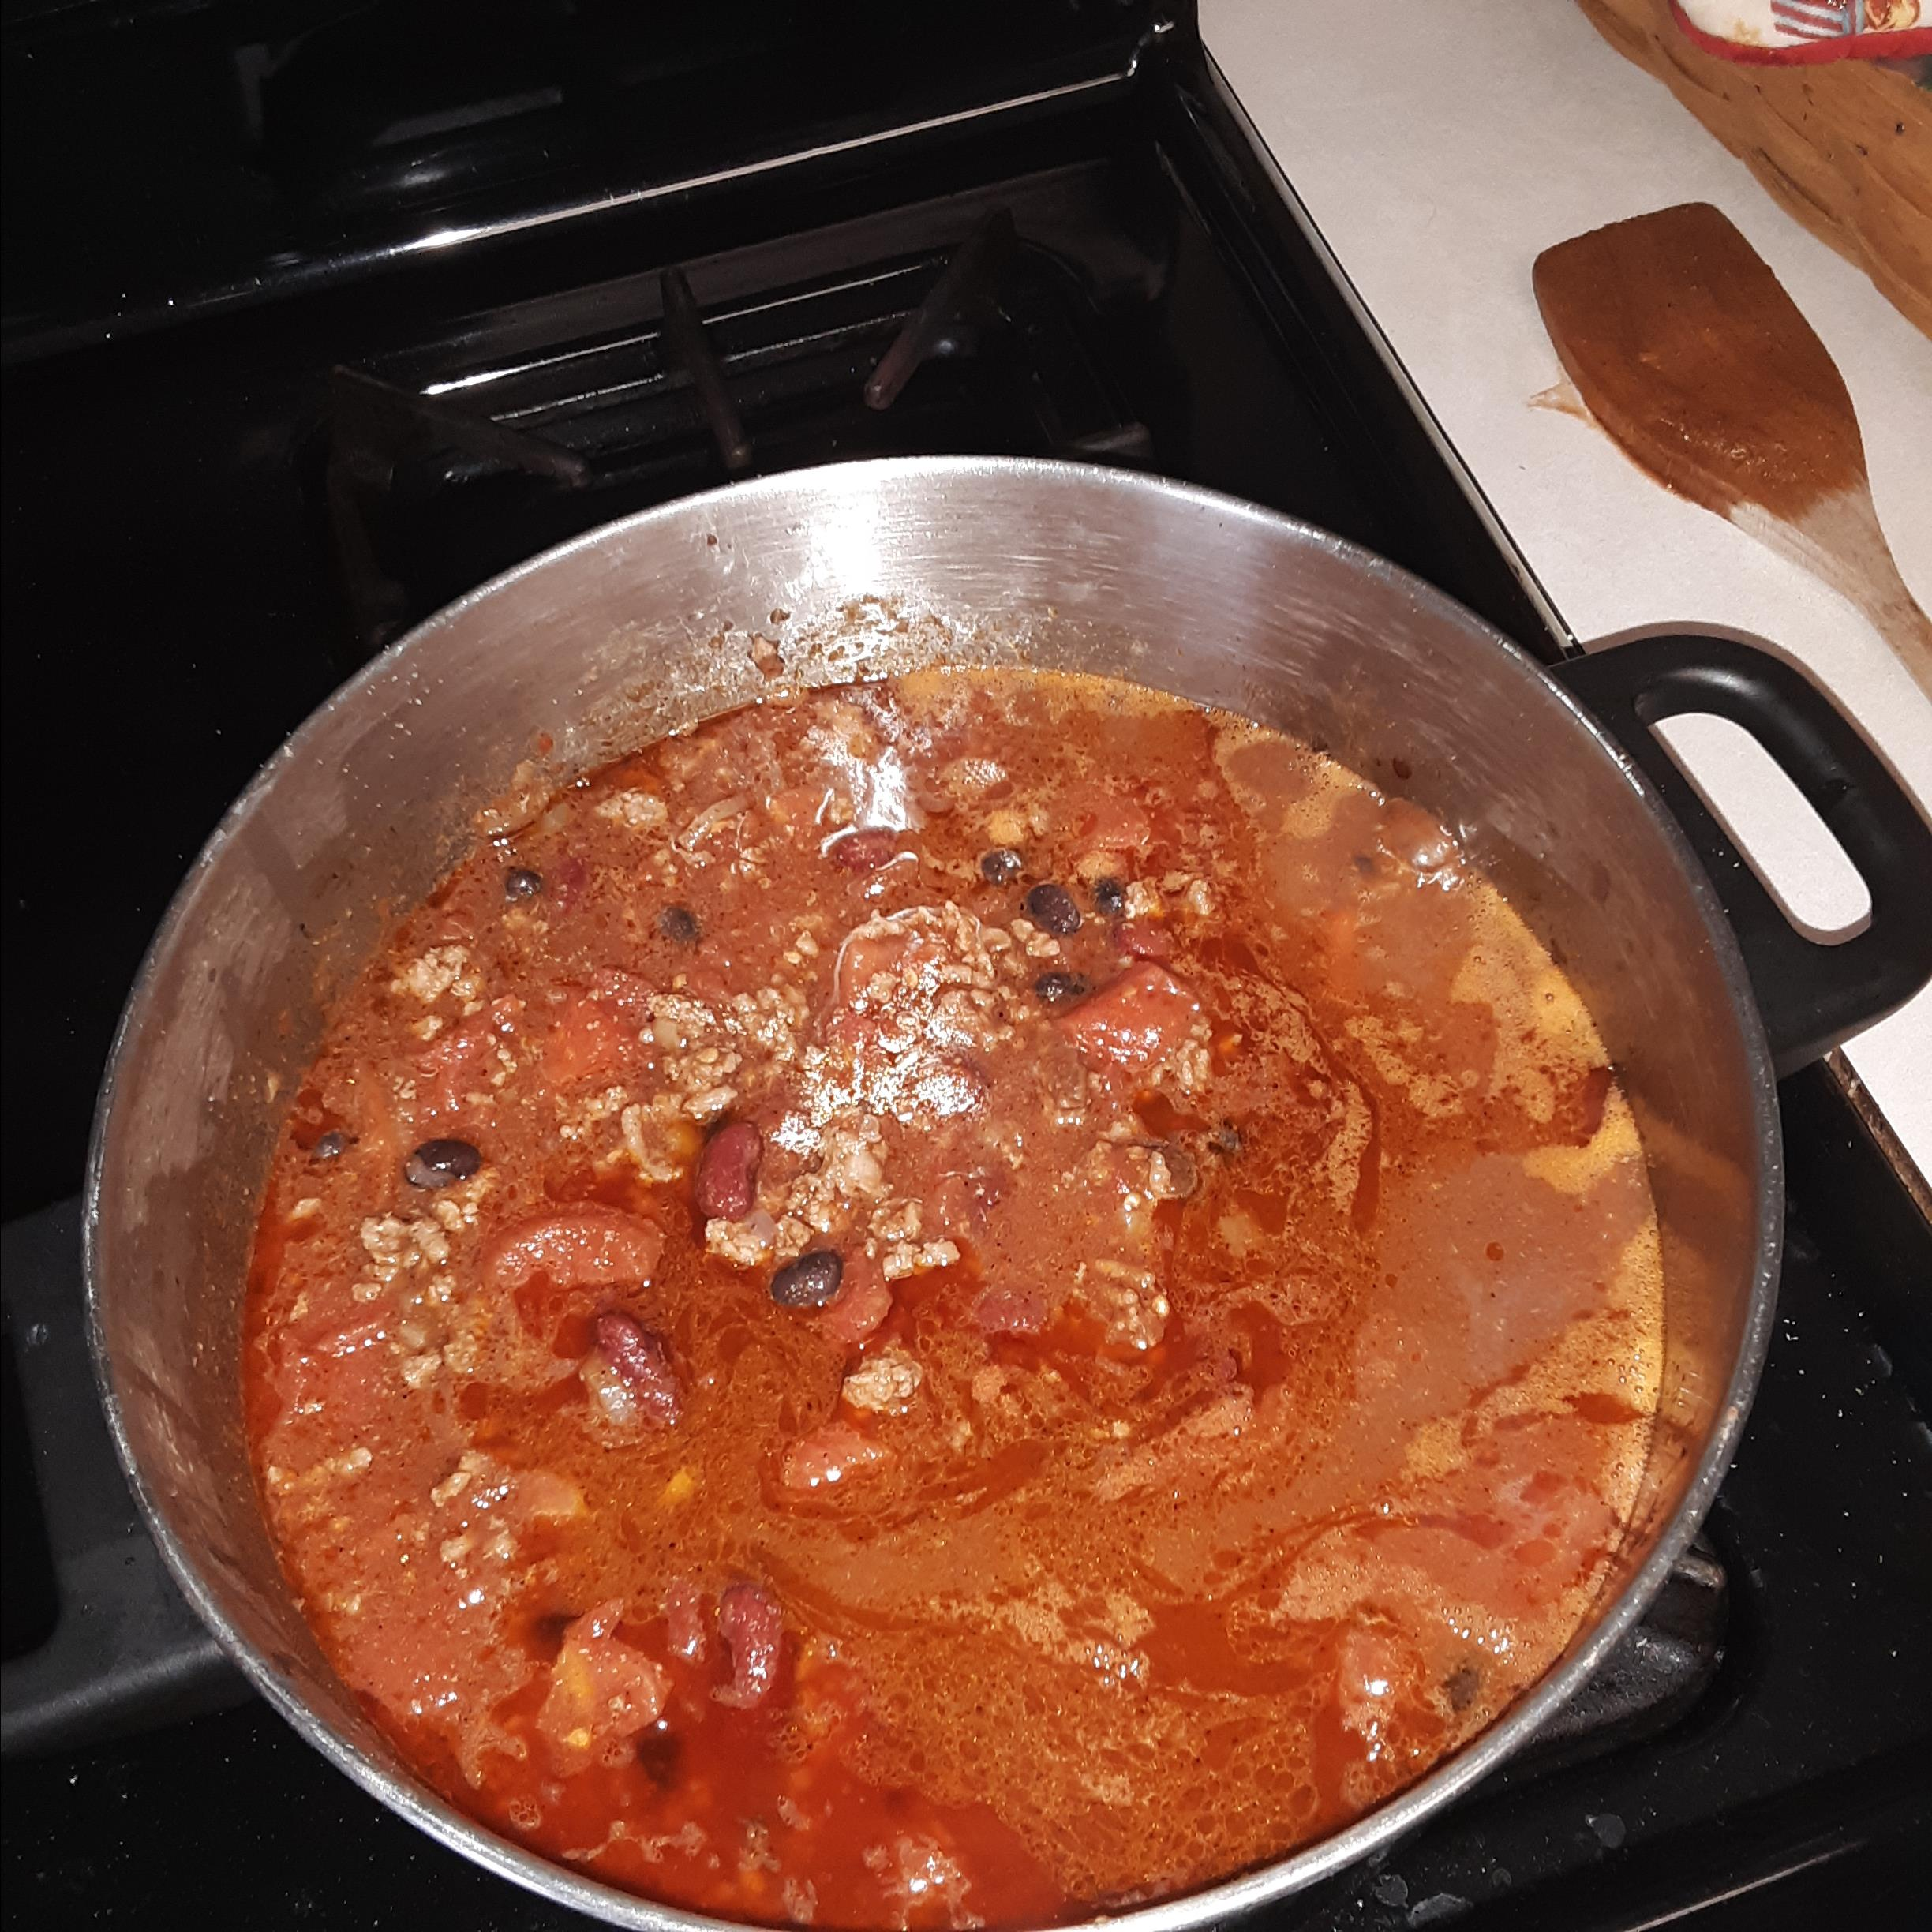 Homemade Chili Allison